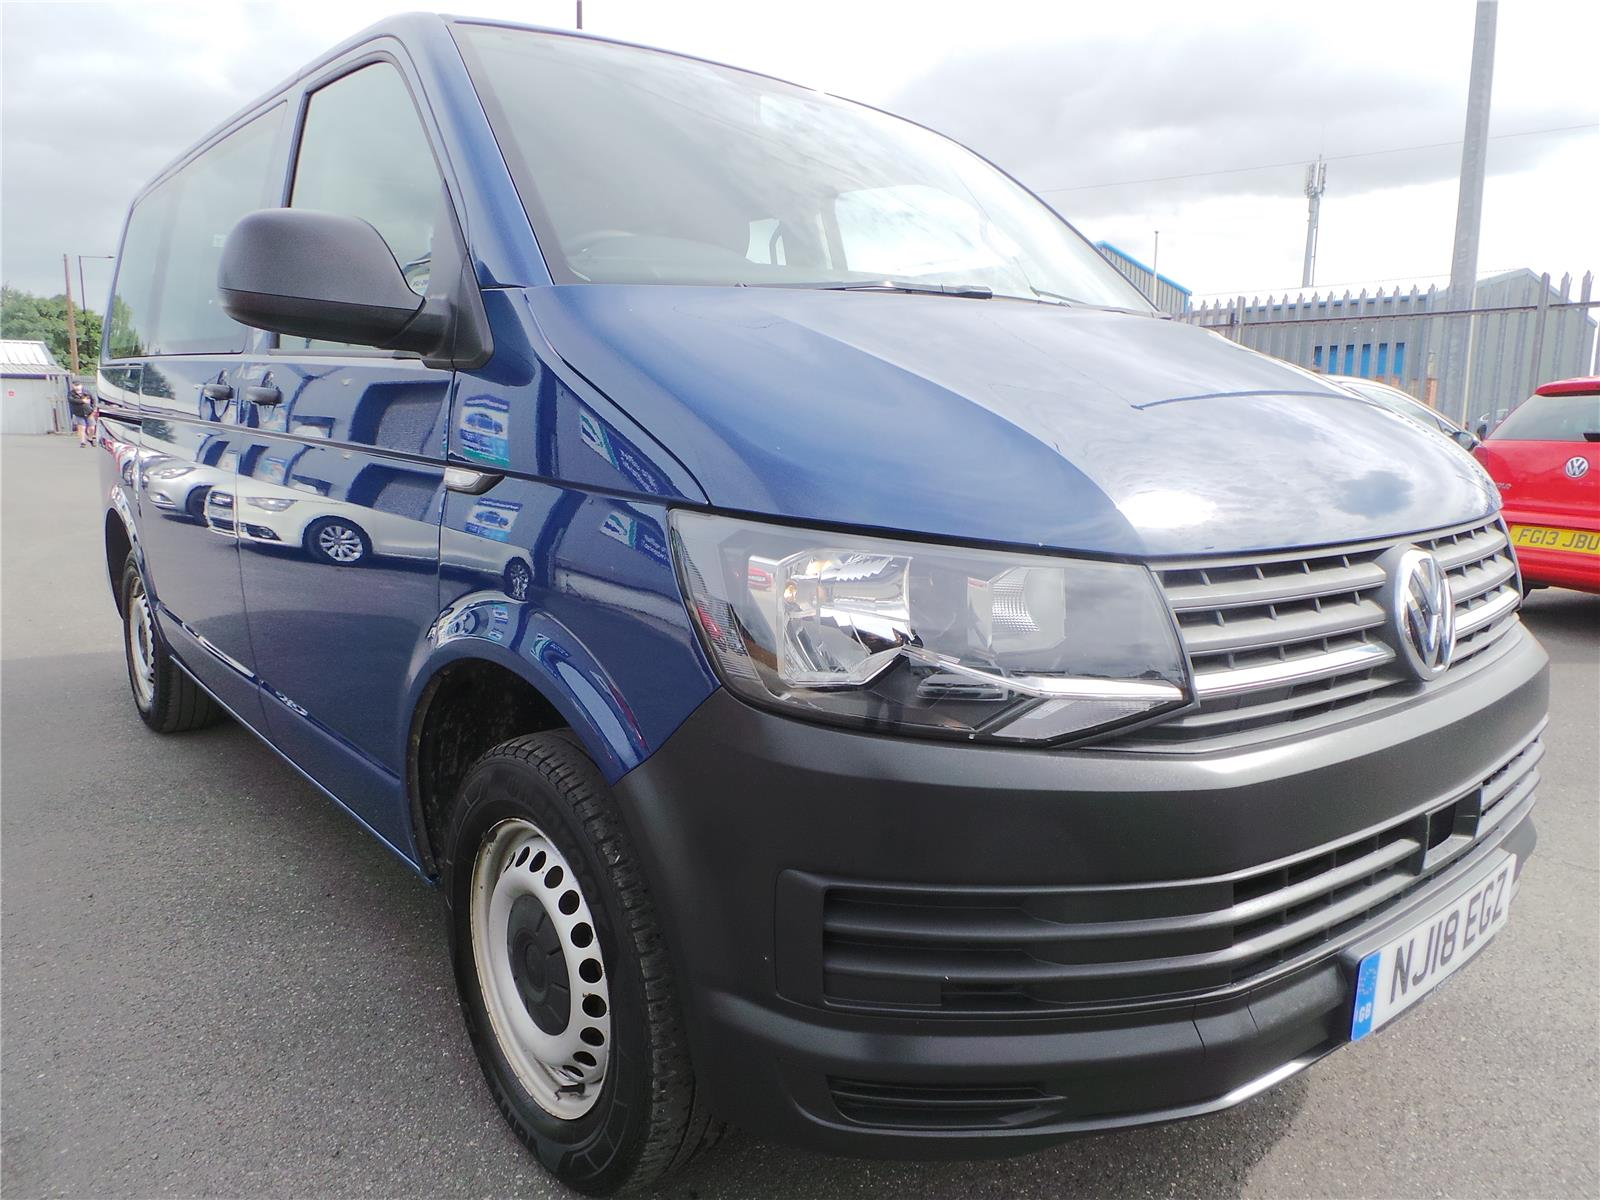 2018 VOLKSWAGEN TRANSPORTER 1968 DIESEL MANUAL 5 Speed 5 DOOR MPV